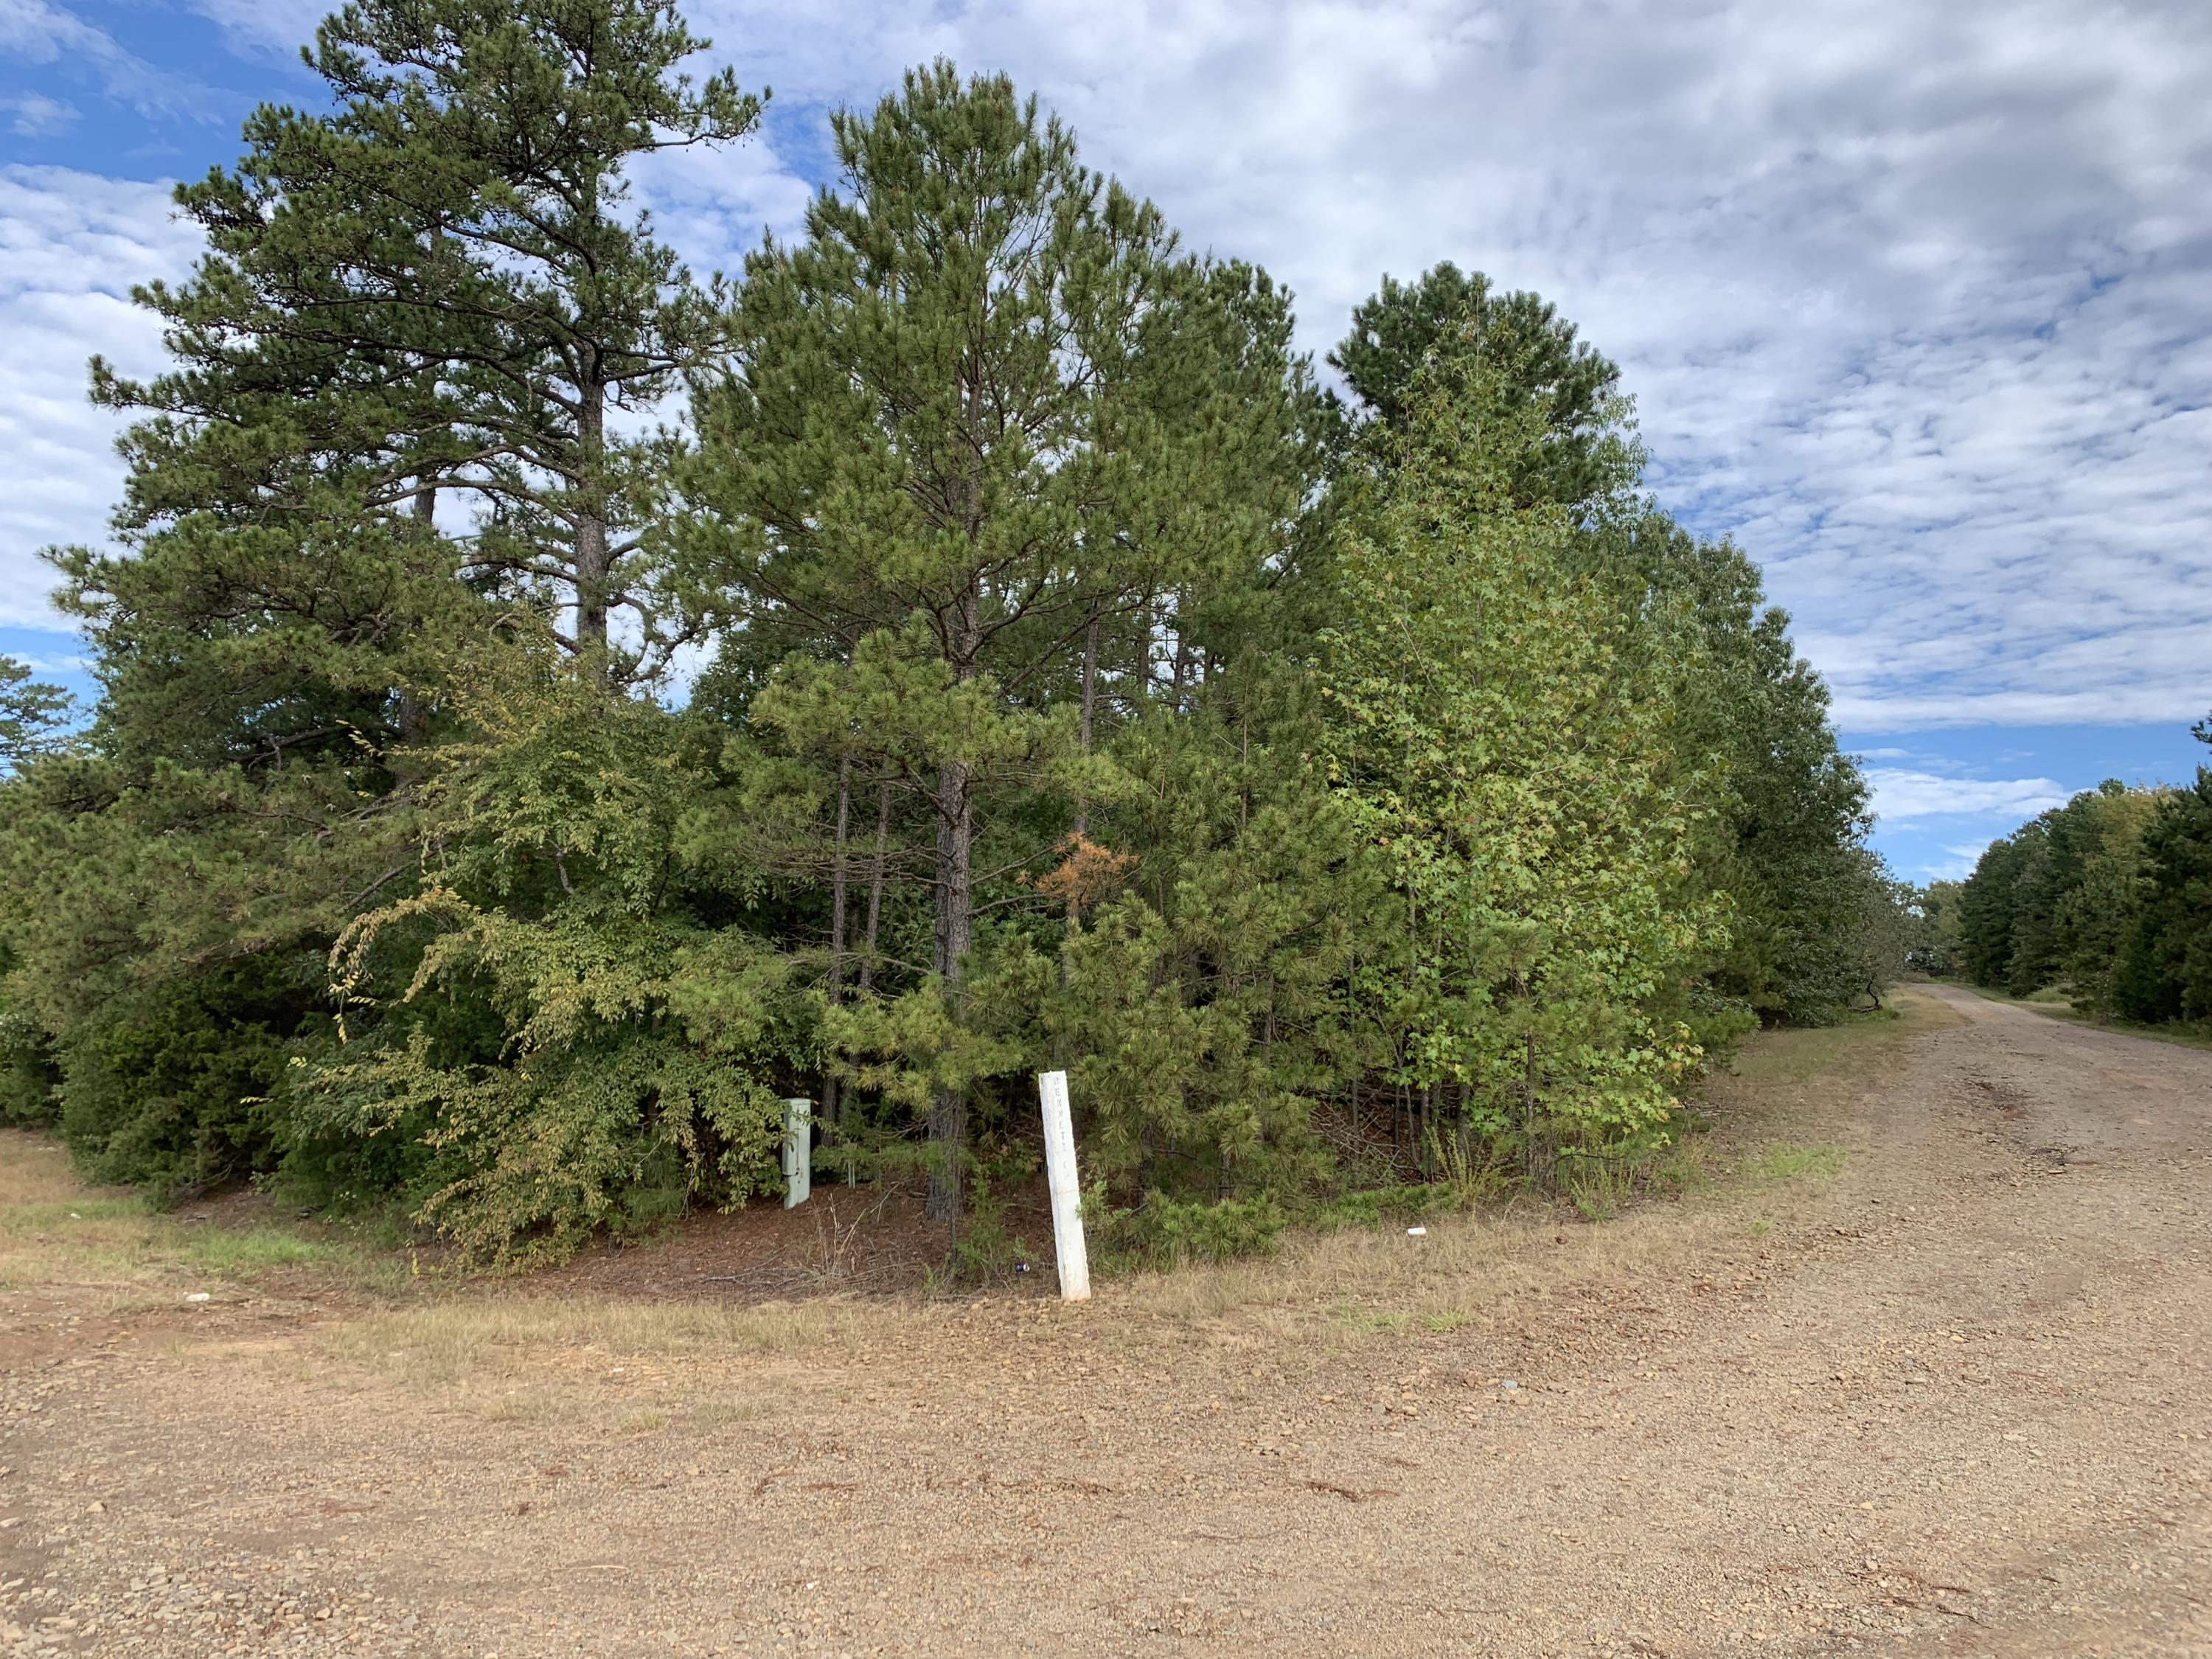 Large photo 3 of land for sale at  Bennett Orchard Estates Lots , London, AR, listed by Coldwell Banker Premier Realty